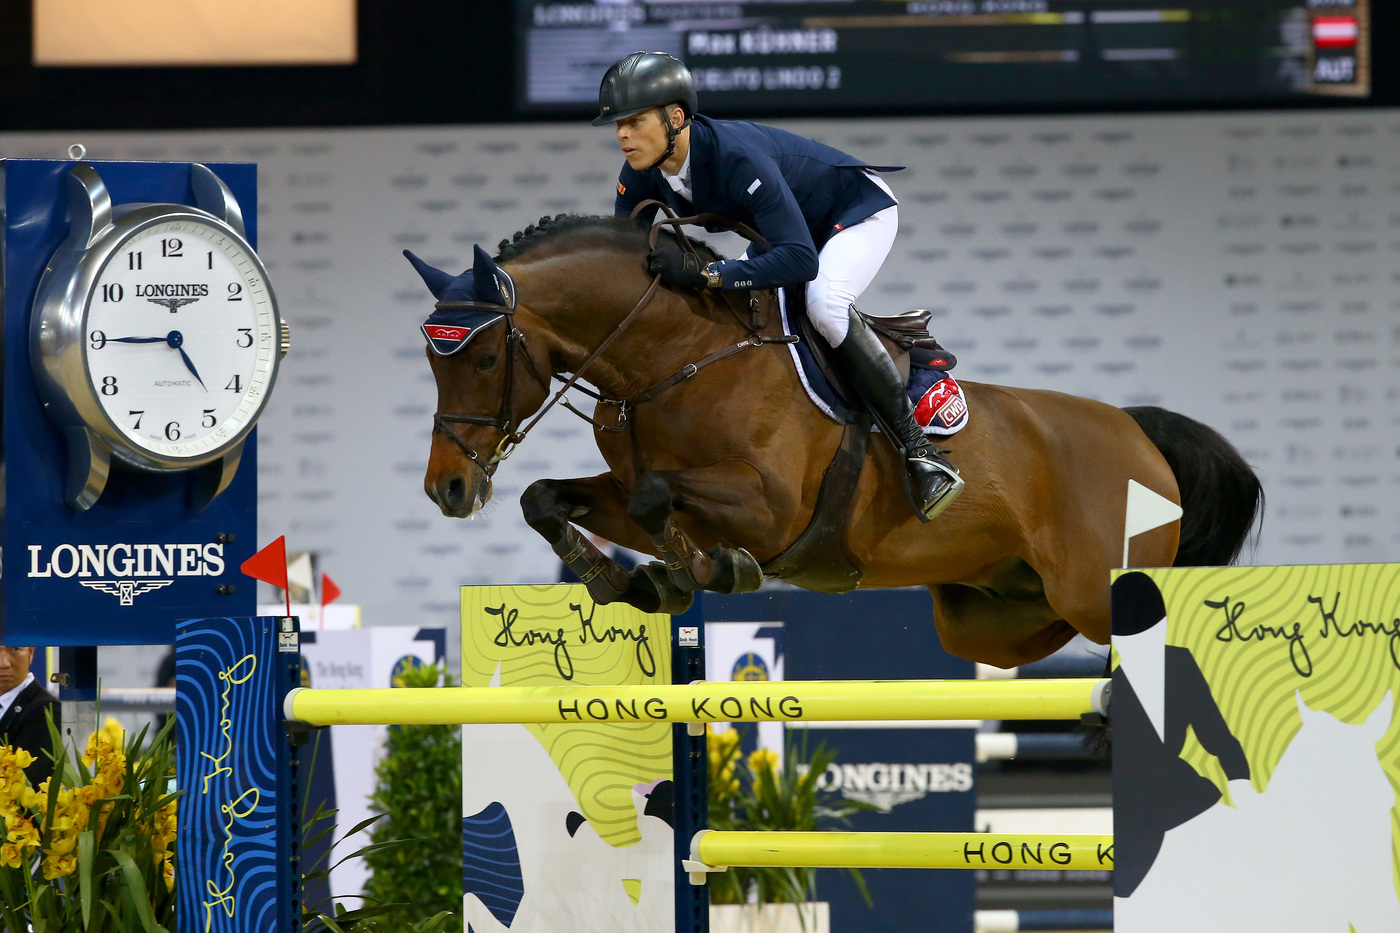 Longines Show Jumping Event: The Longines Masters of Hong Kong: Patrice Delaveau on Aquila HDC takes top class Longines Grand Prix win 3